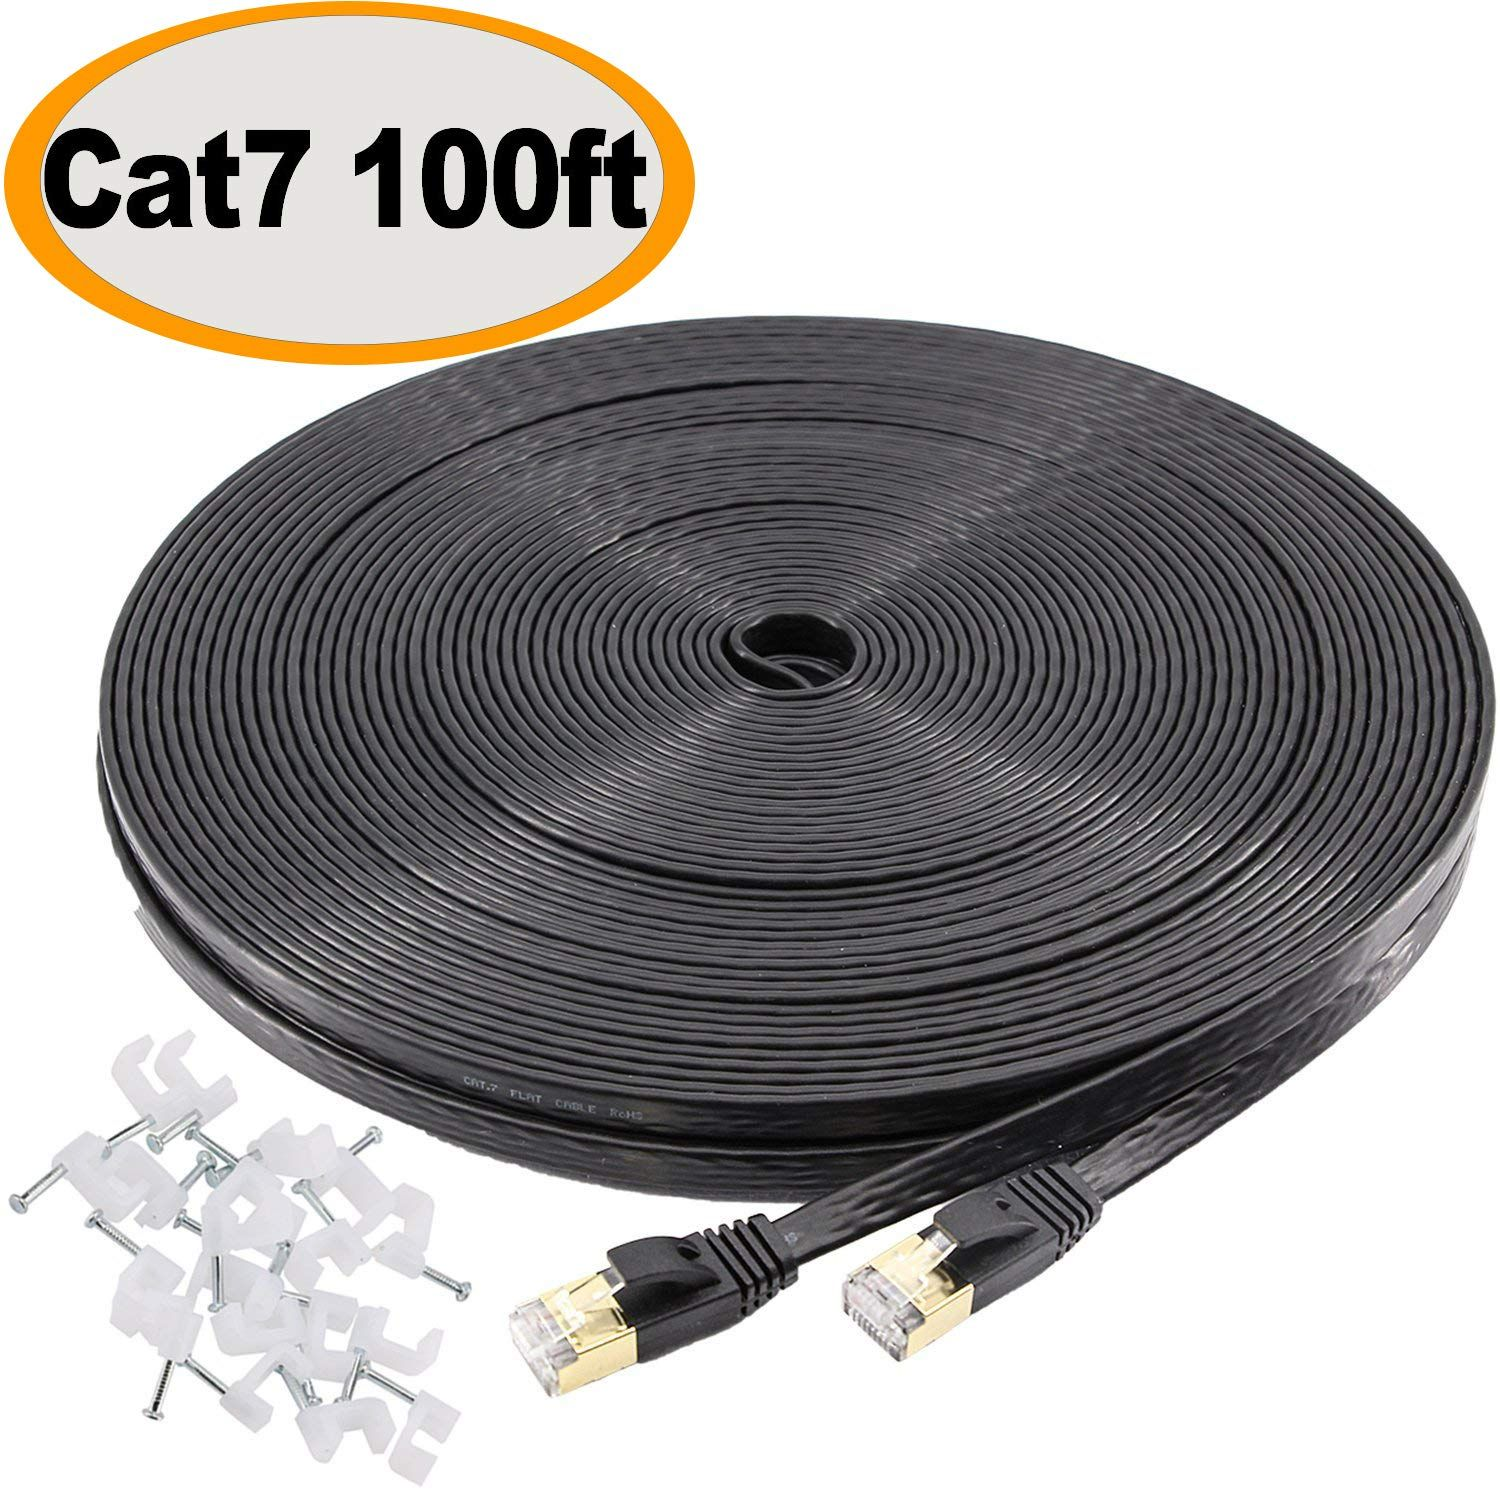 100ft Cat5e Network Cable 100 Internet Game Router 100 ft